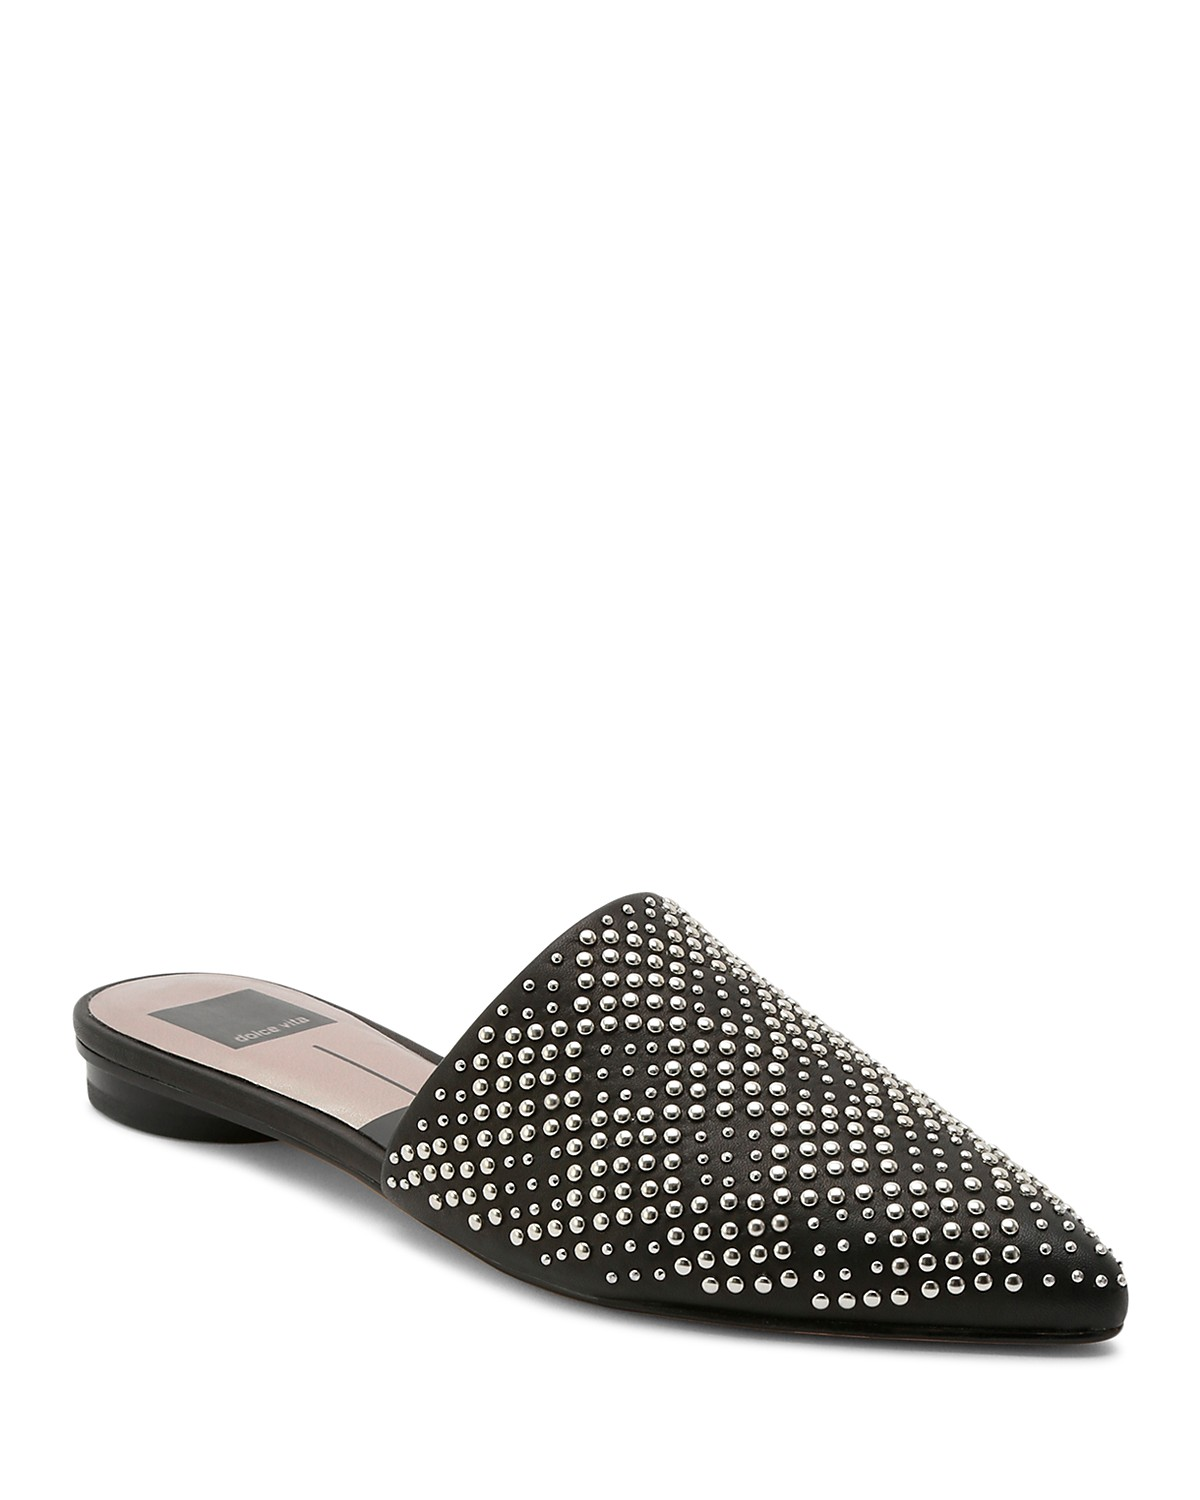 Dolce Vita Women's Elvah Studded Leather Pointed Toe Mules